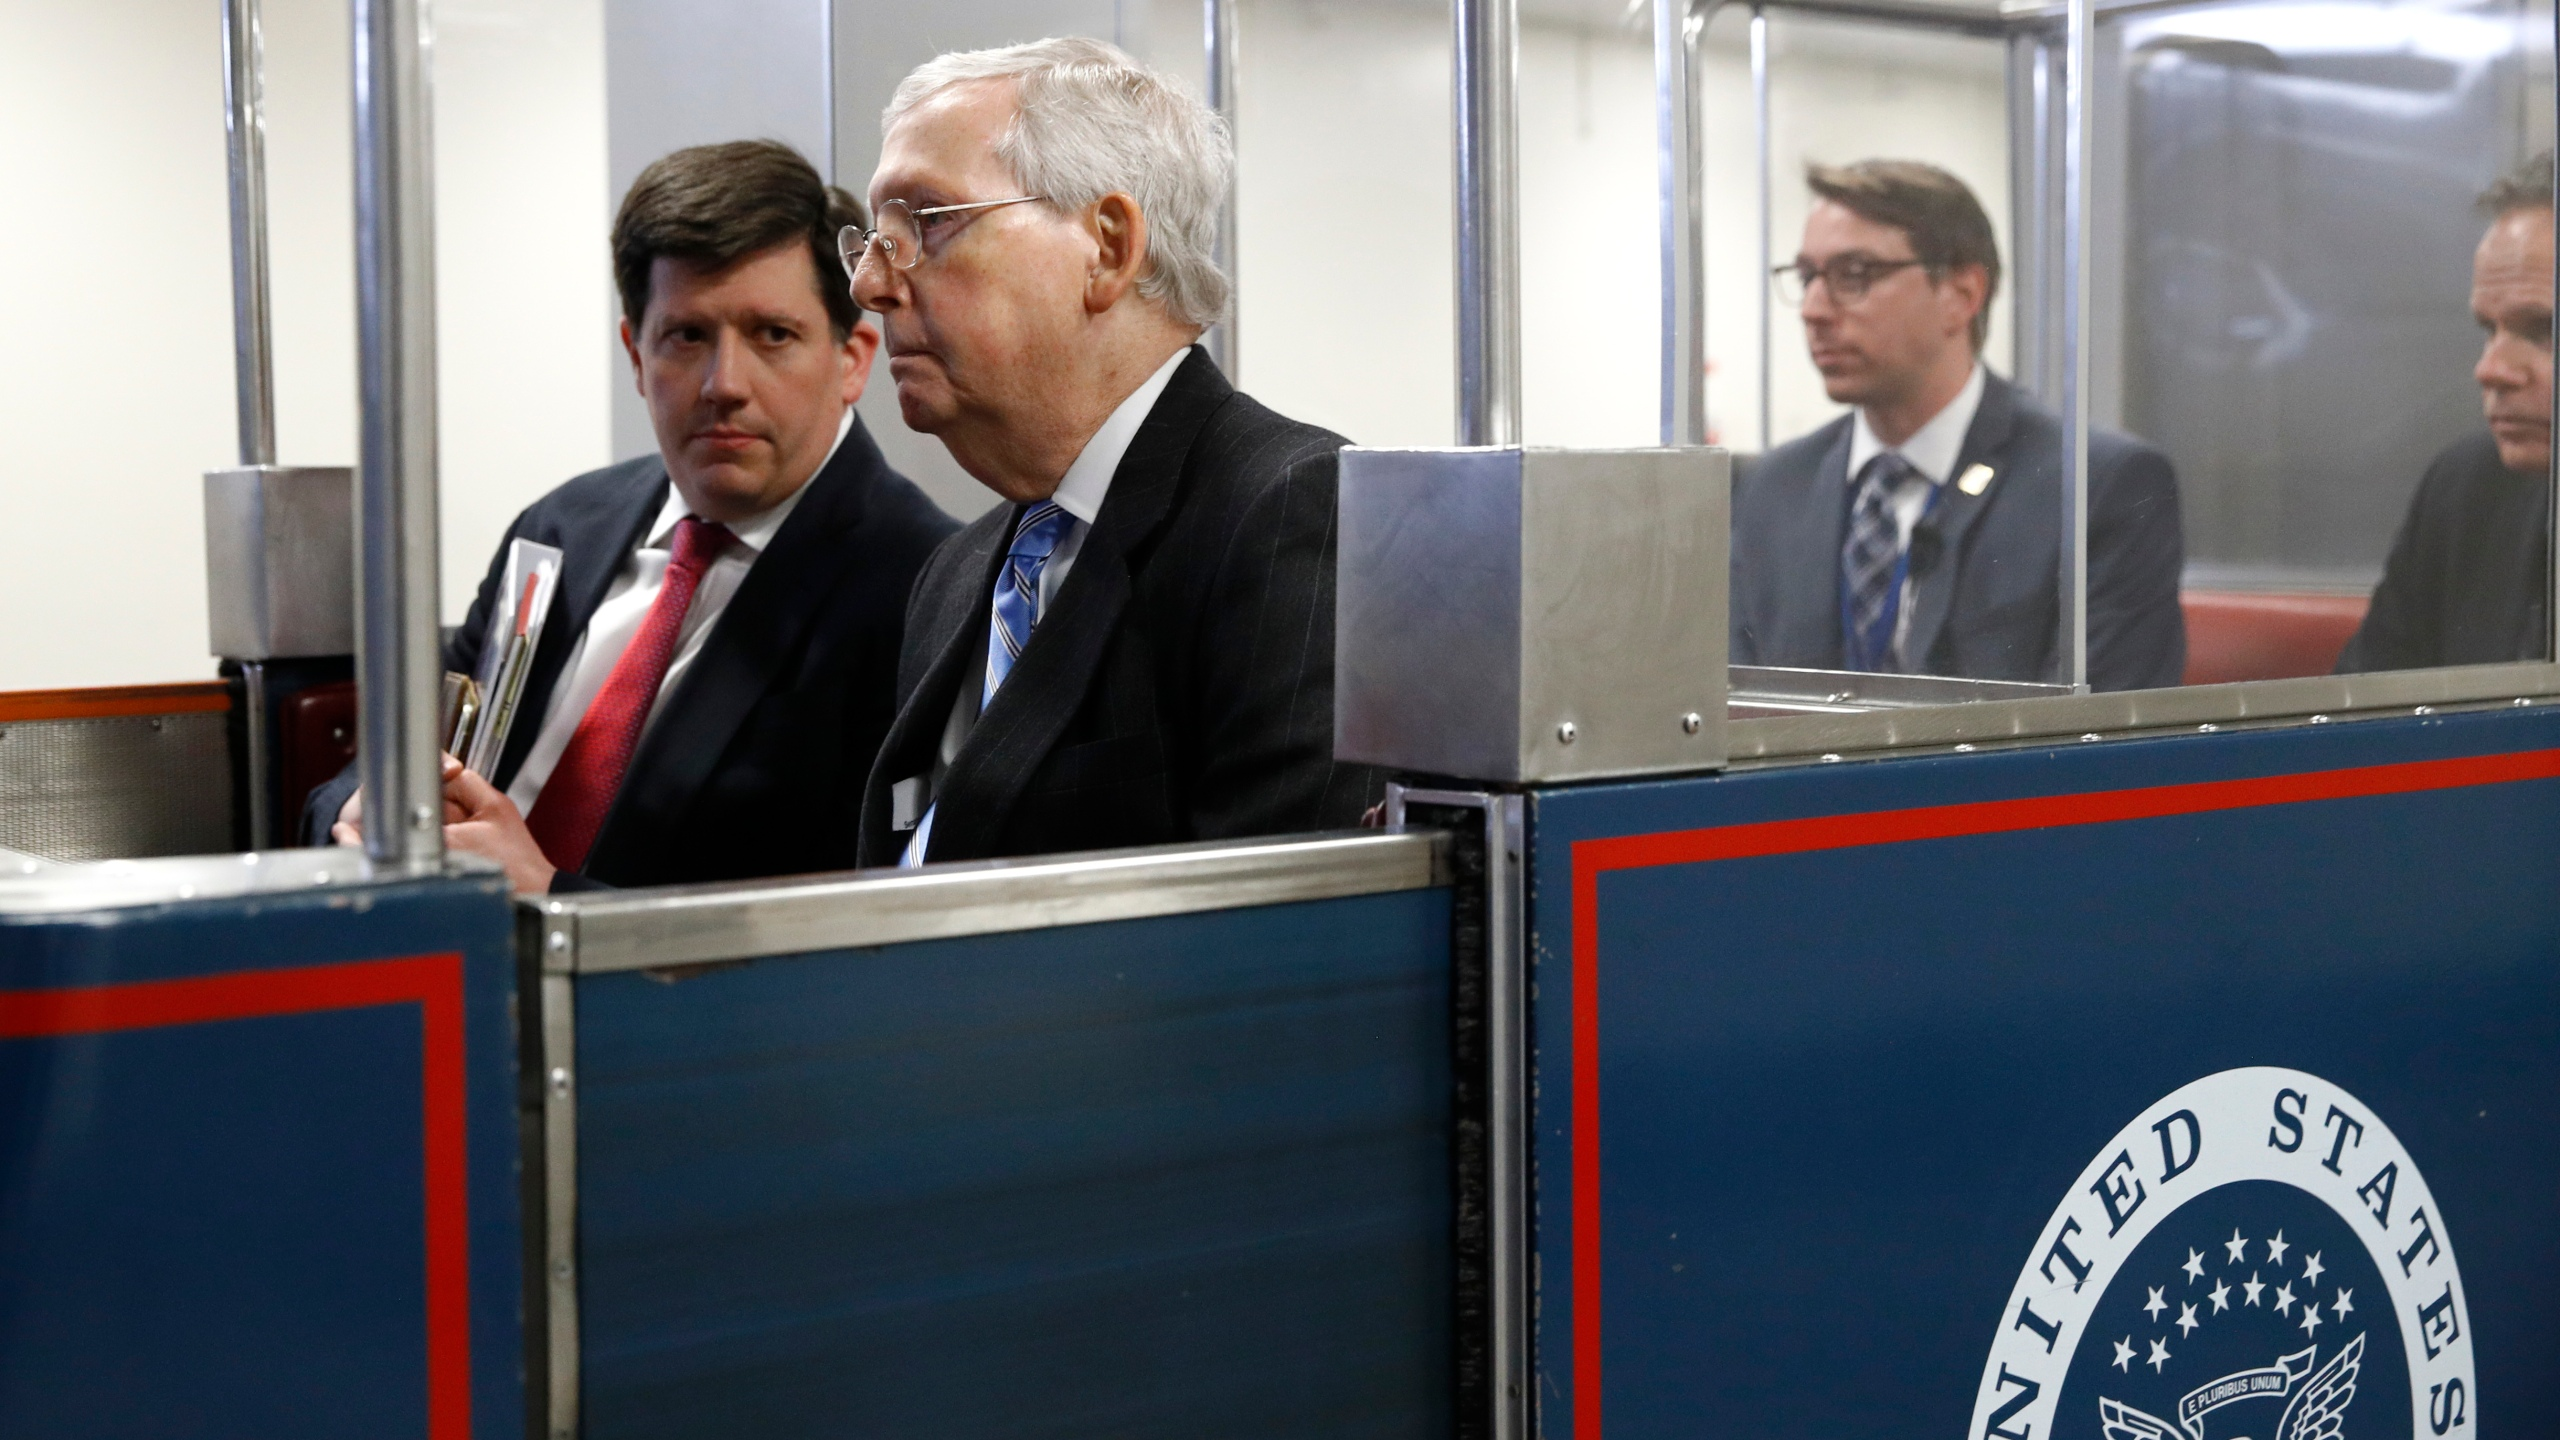 Senate Majority Leader Mitch McConnell of Ky., rides a subway car on Capitol Hill in Washington before a vote on a coronavirus response bill. (AP file/Patrick Semansky)